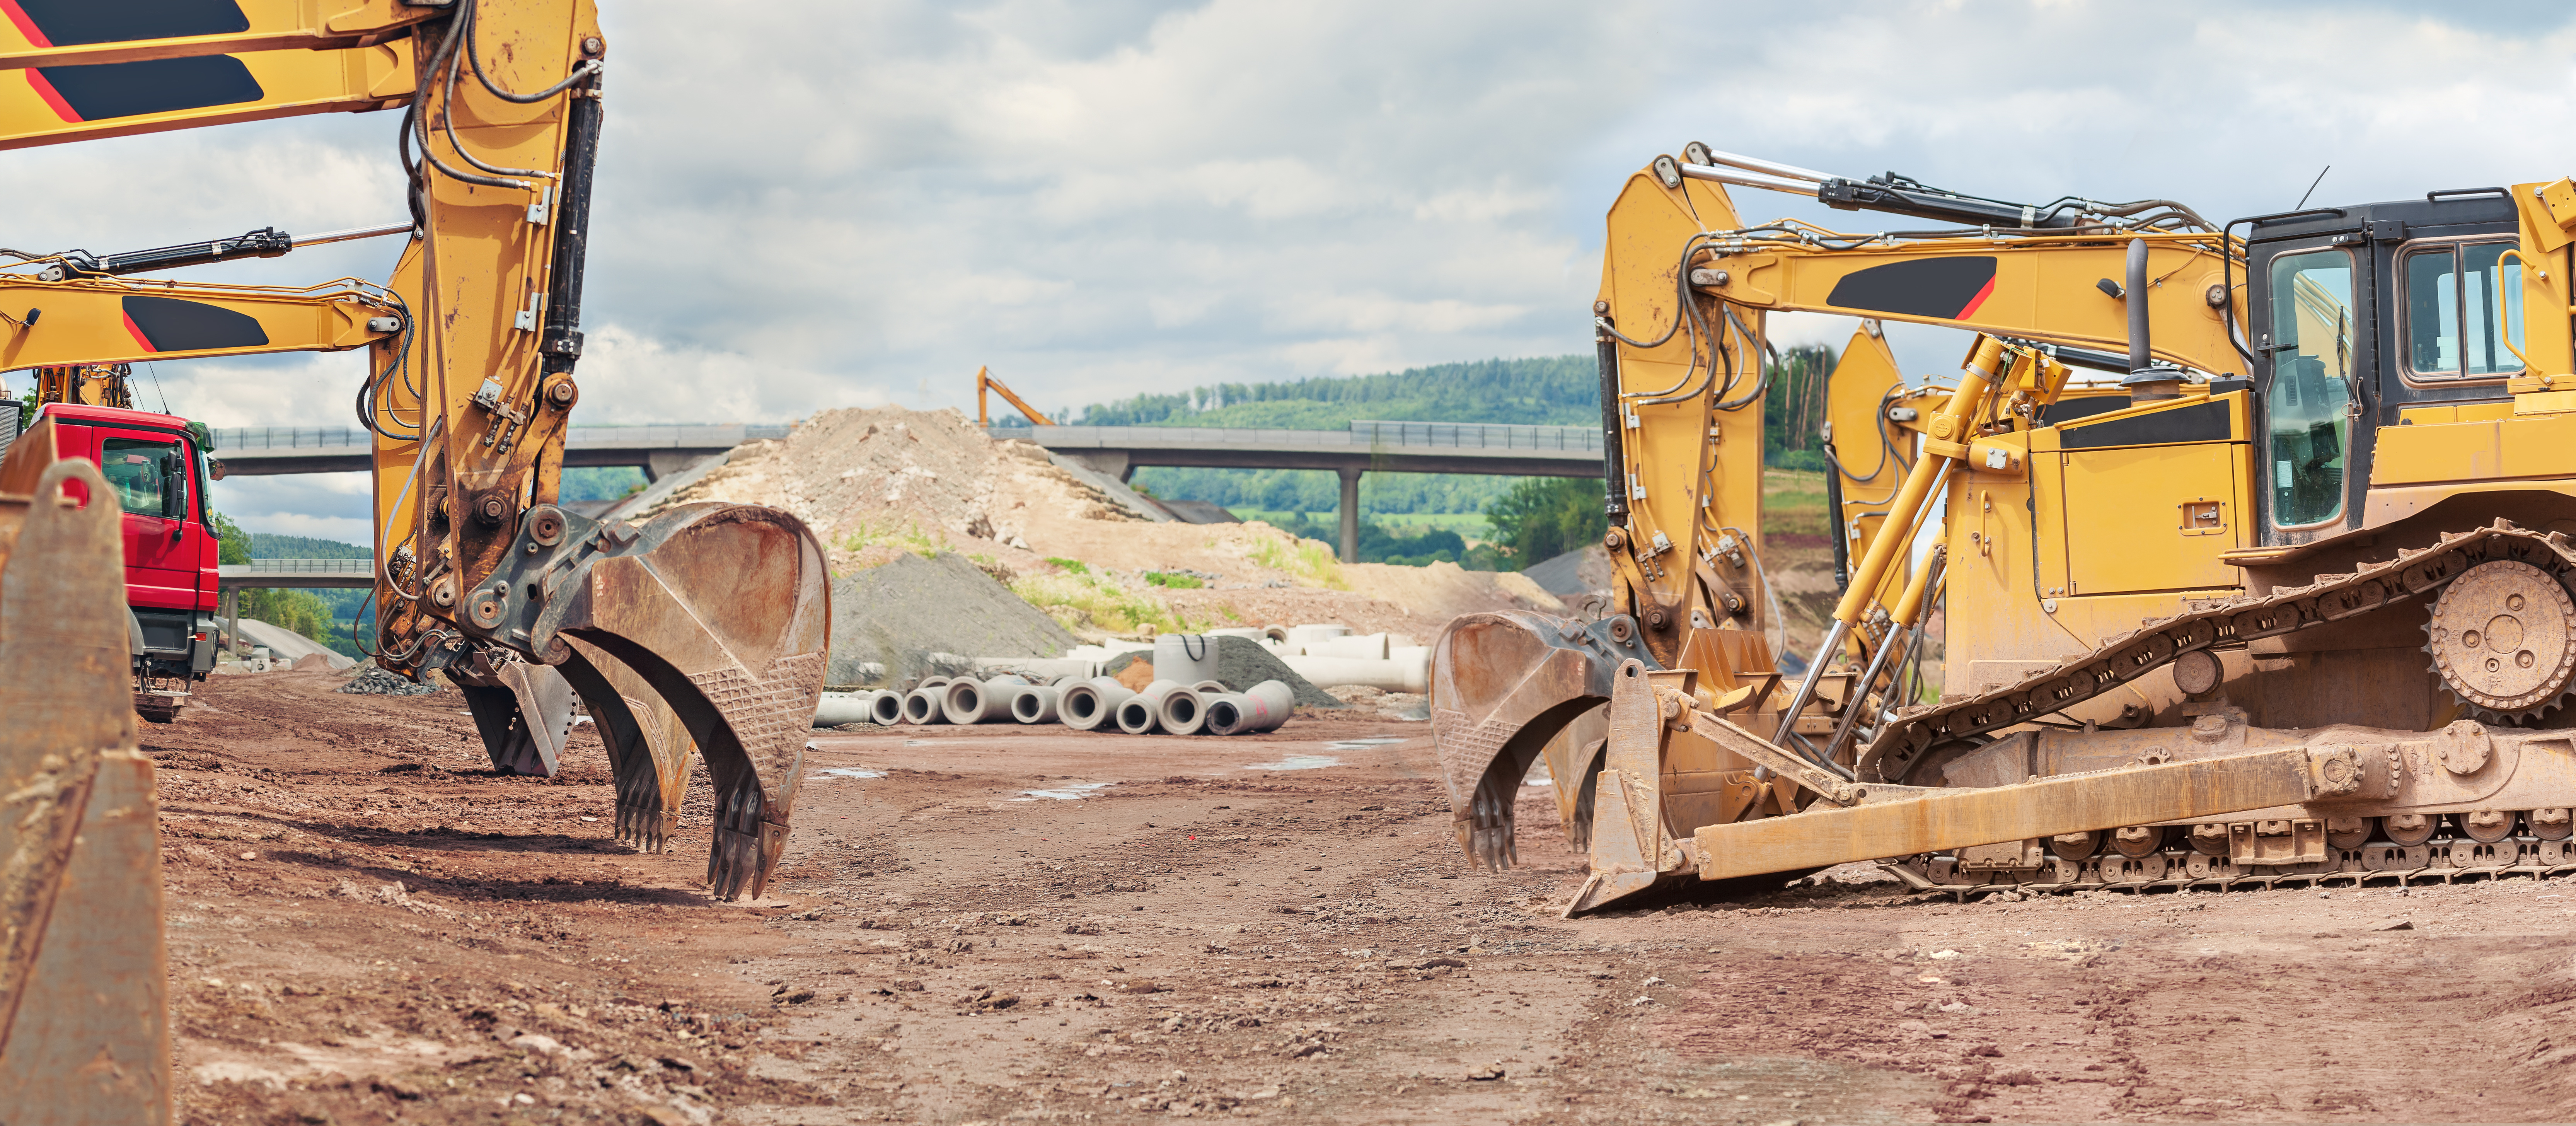 Construction equipment in a construction site signifying the need for accurate fuel control analysis.